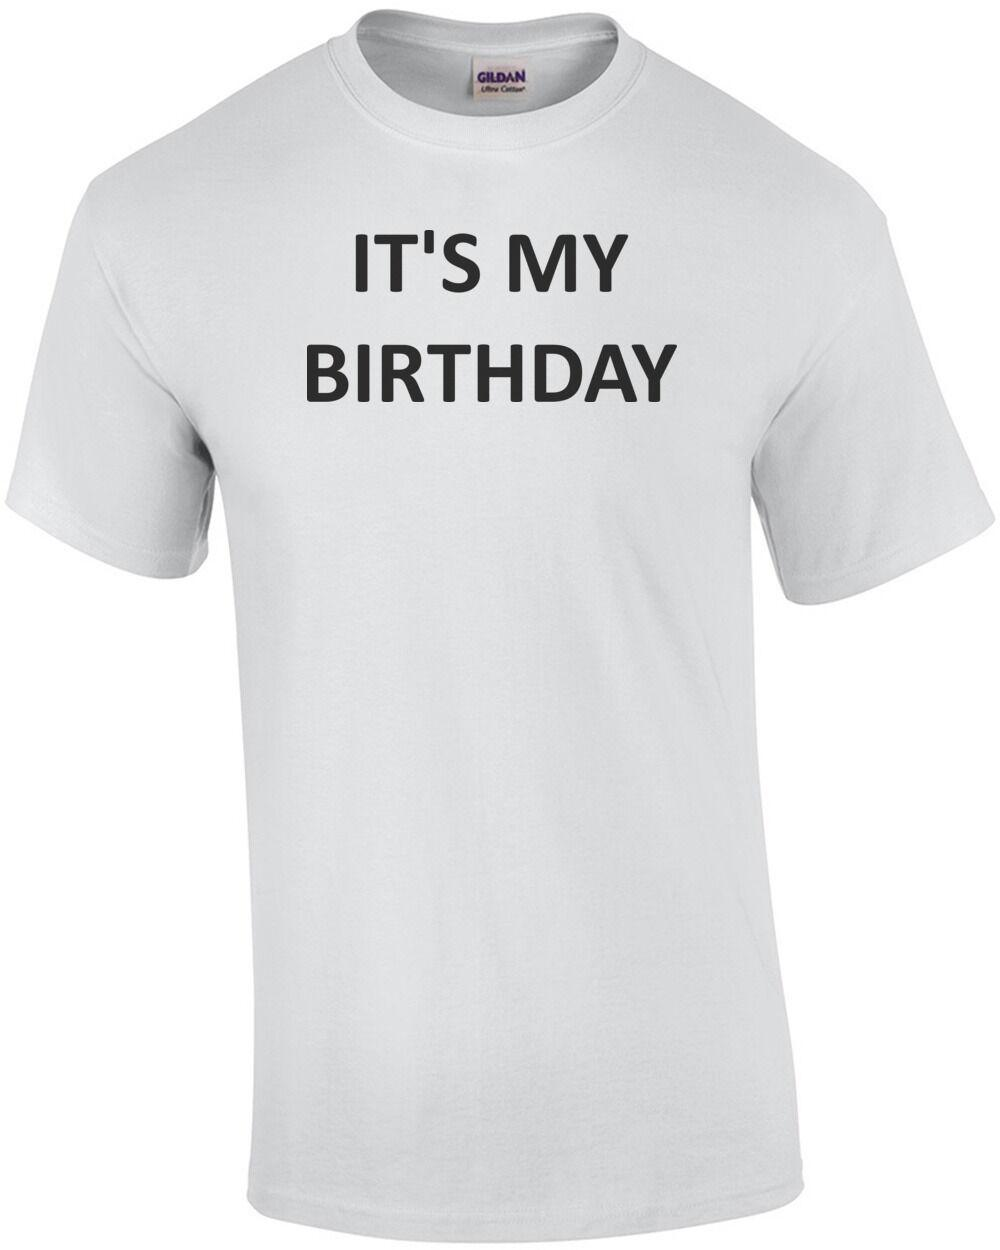 ITS MY BIRTHDAY HAPPY SHIRT Funny Unisex Casual Top The T Shirt Shirts Designer From Paystoretees 1296